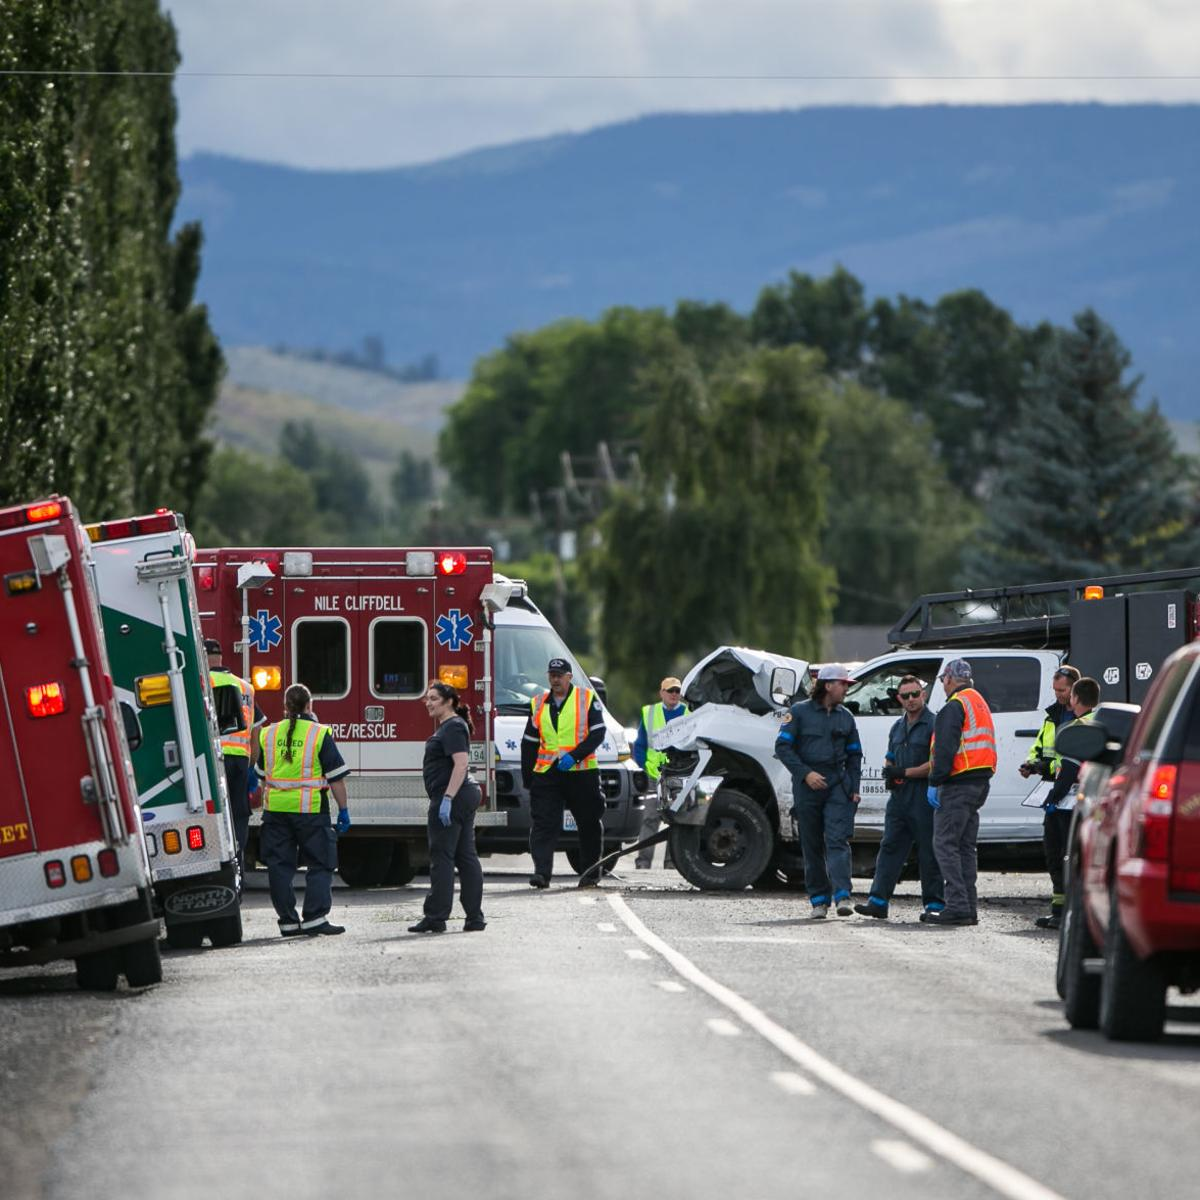 One killed, several injured in crash near Tieton | Local